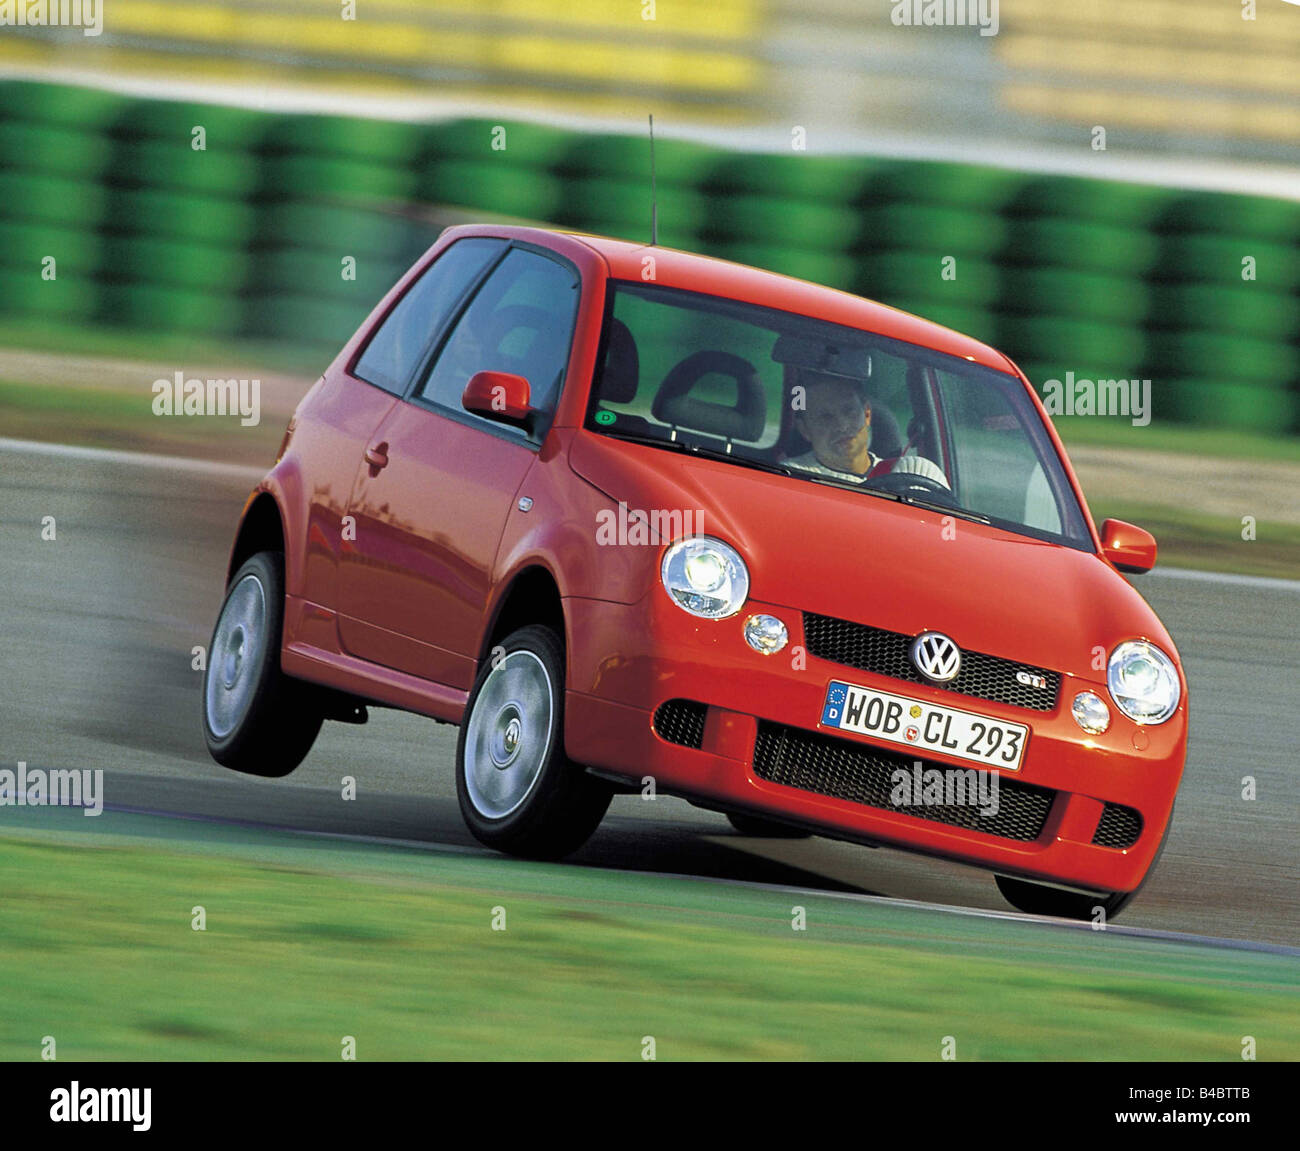 Worksheet. Car VW Volkswagen Lupo GTI Miniapproxs Limousine red model